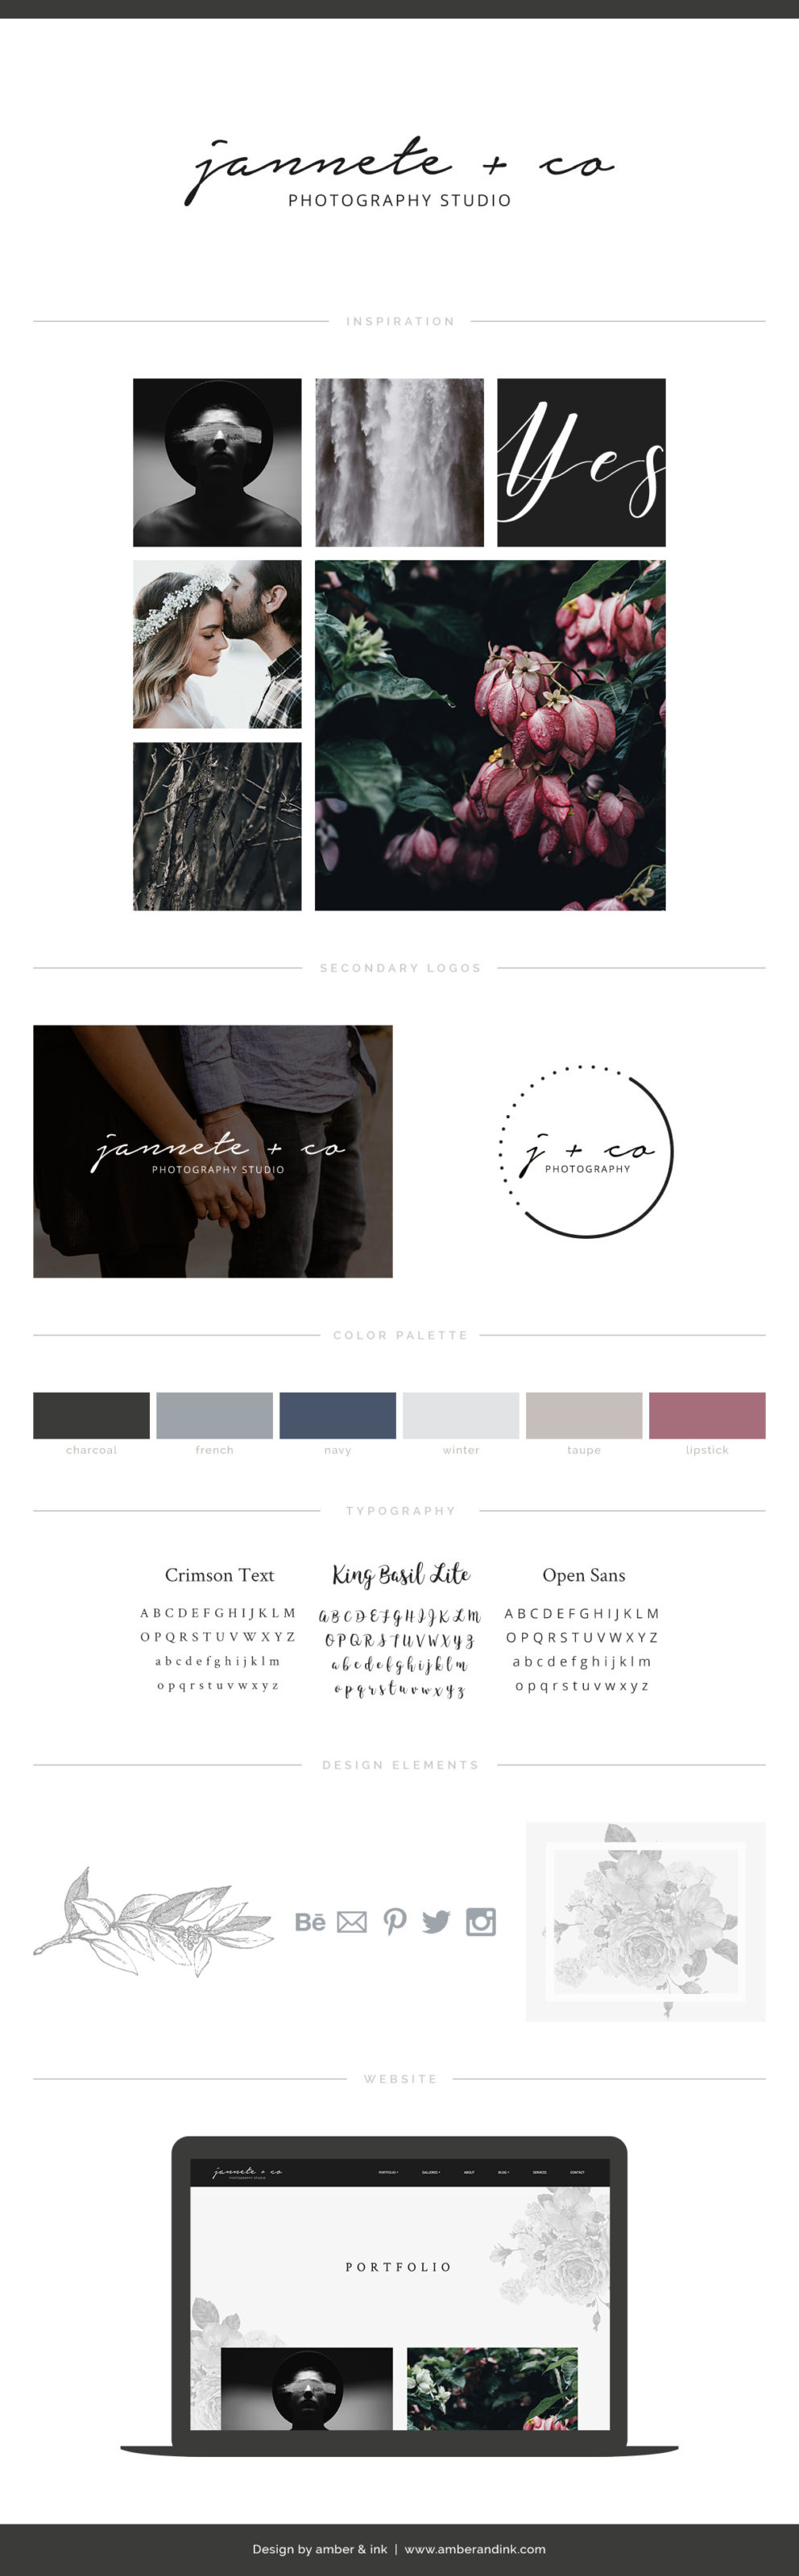 Branding board guide for wedding photographers. Dark, glamorous and classy.